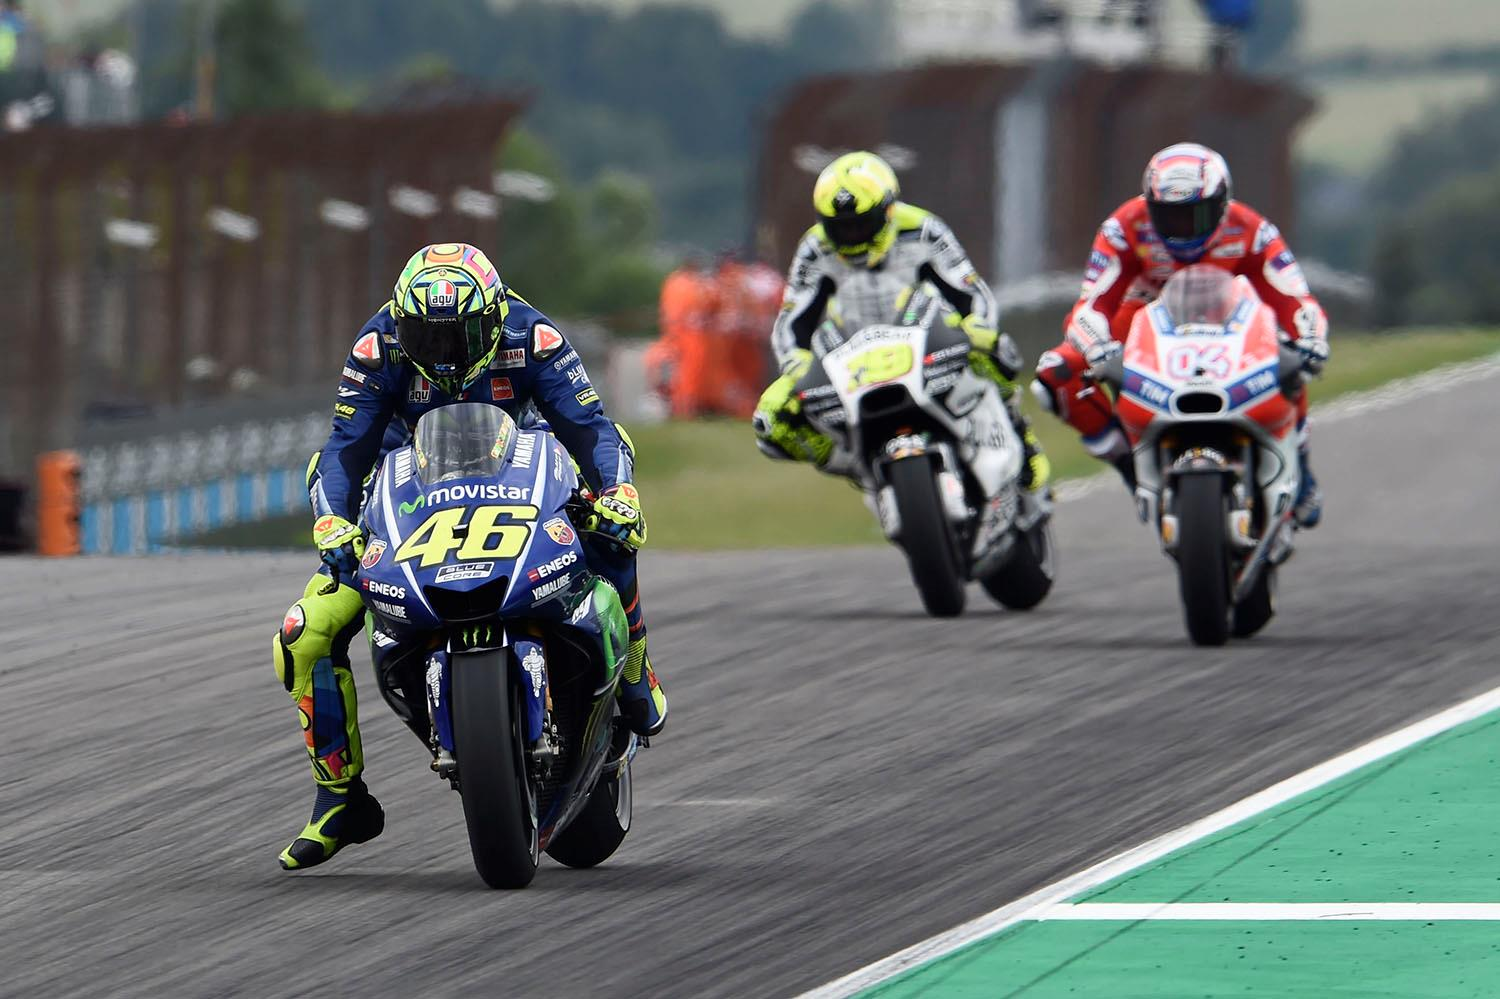 Rossi anxious about Ducati threat at Brno